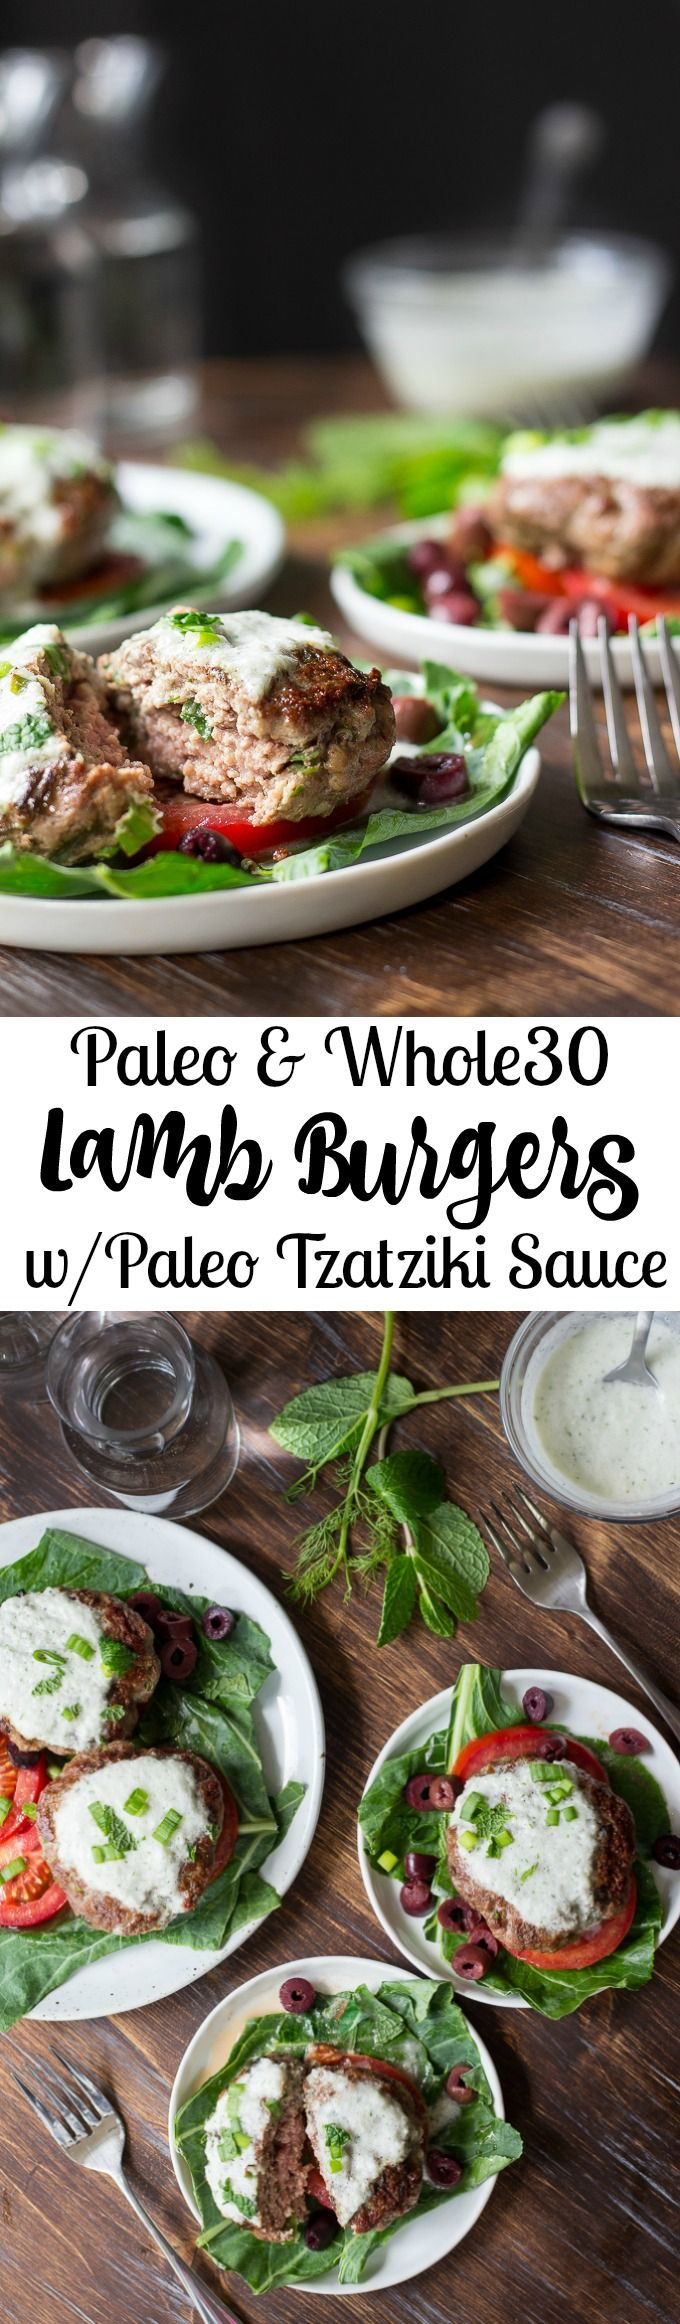 Paleo Lamb Burgers topped with dairy free Tzatziki.  Whole30 friendly, quick and easy!